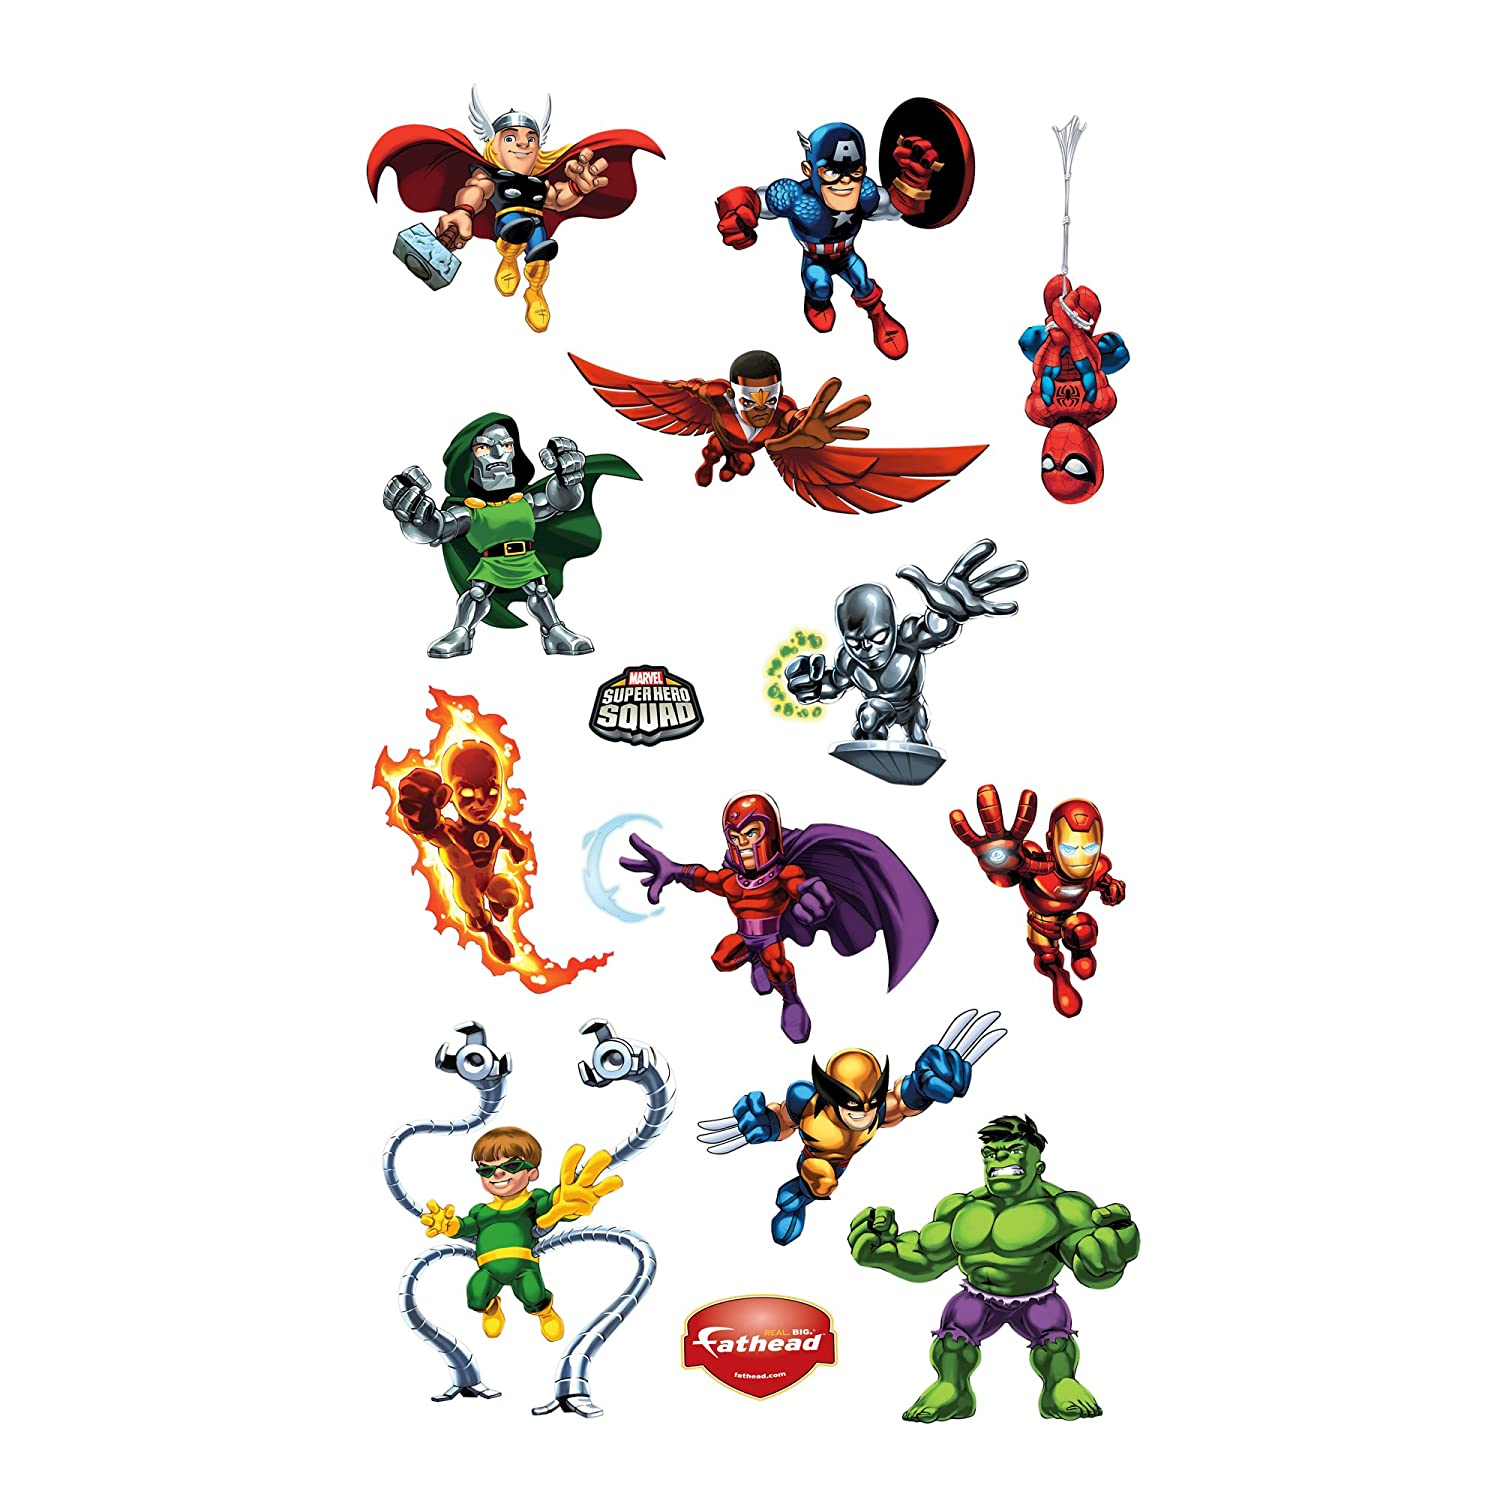 Amazoncom Super Hero Squad Wall Decal Home  Kitchen - Superhero wall decals target